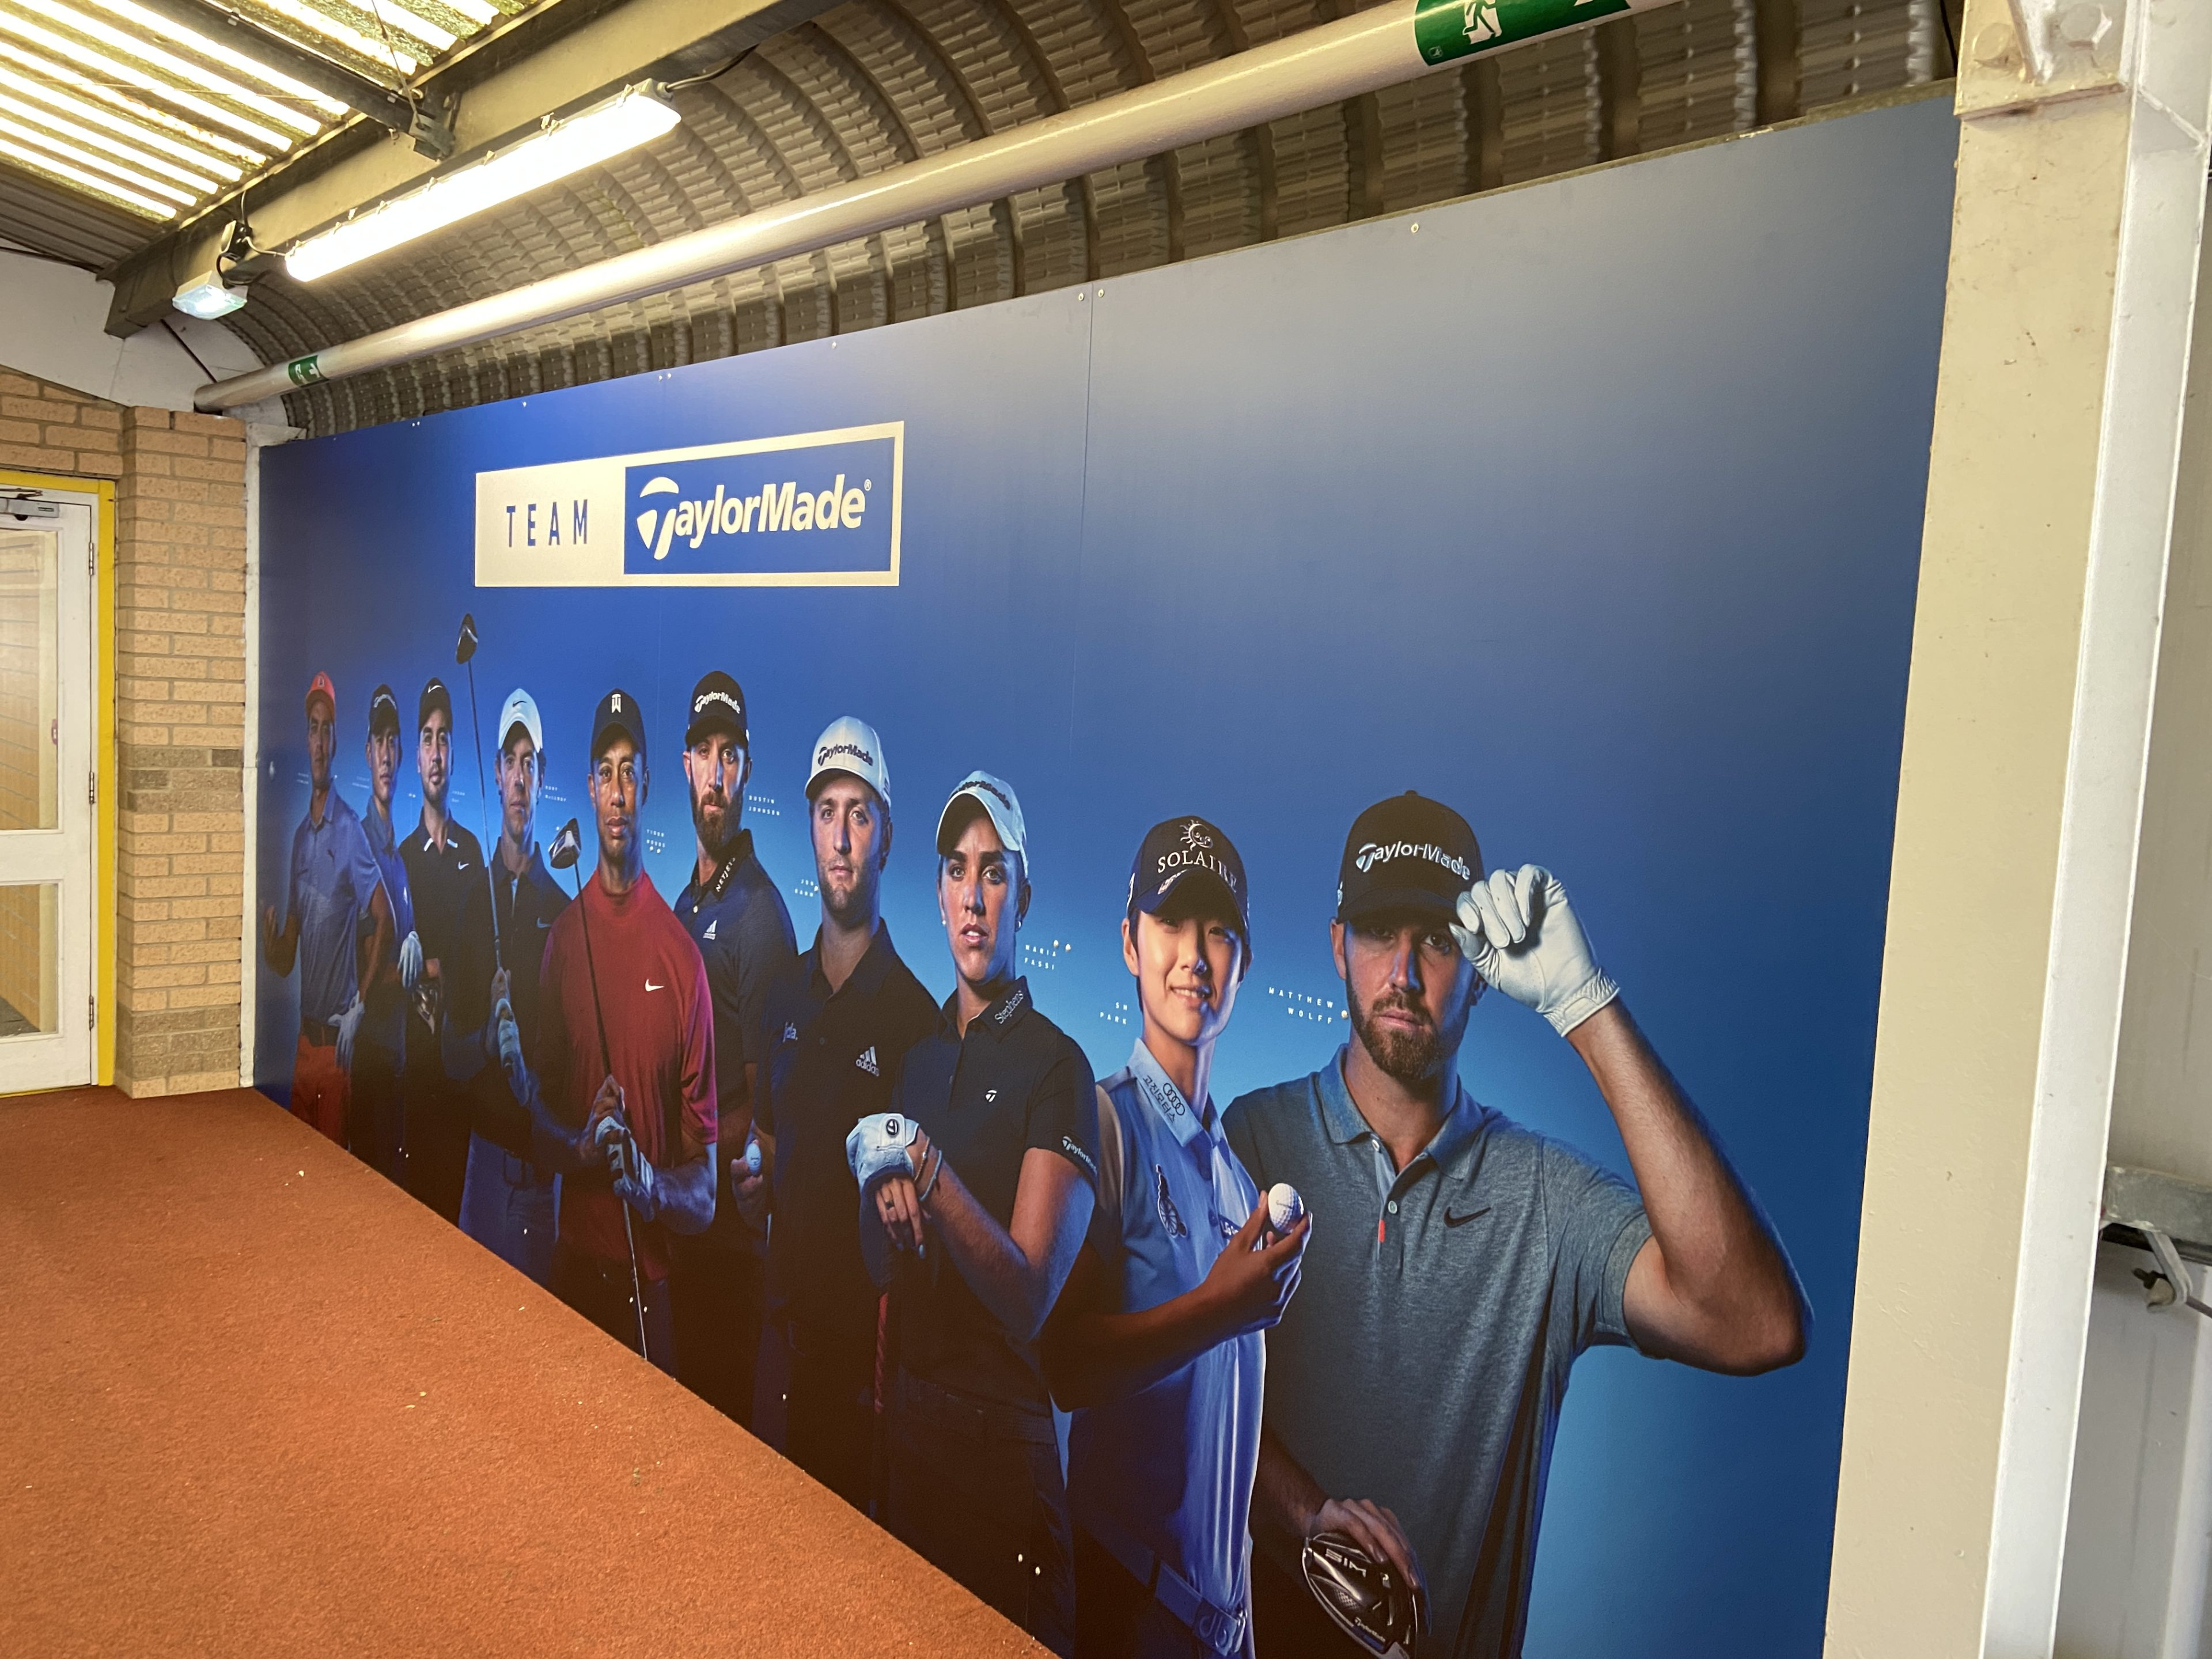 Taylormade team golf wall banner